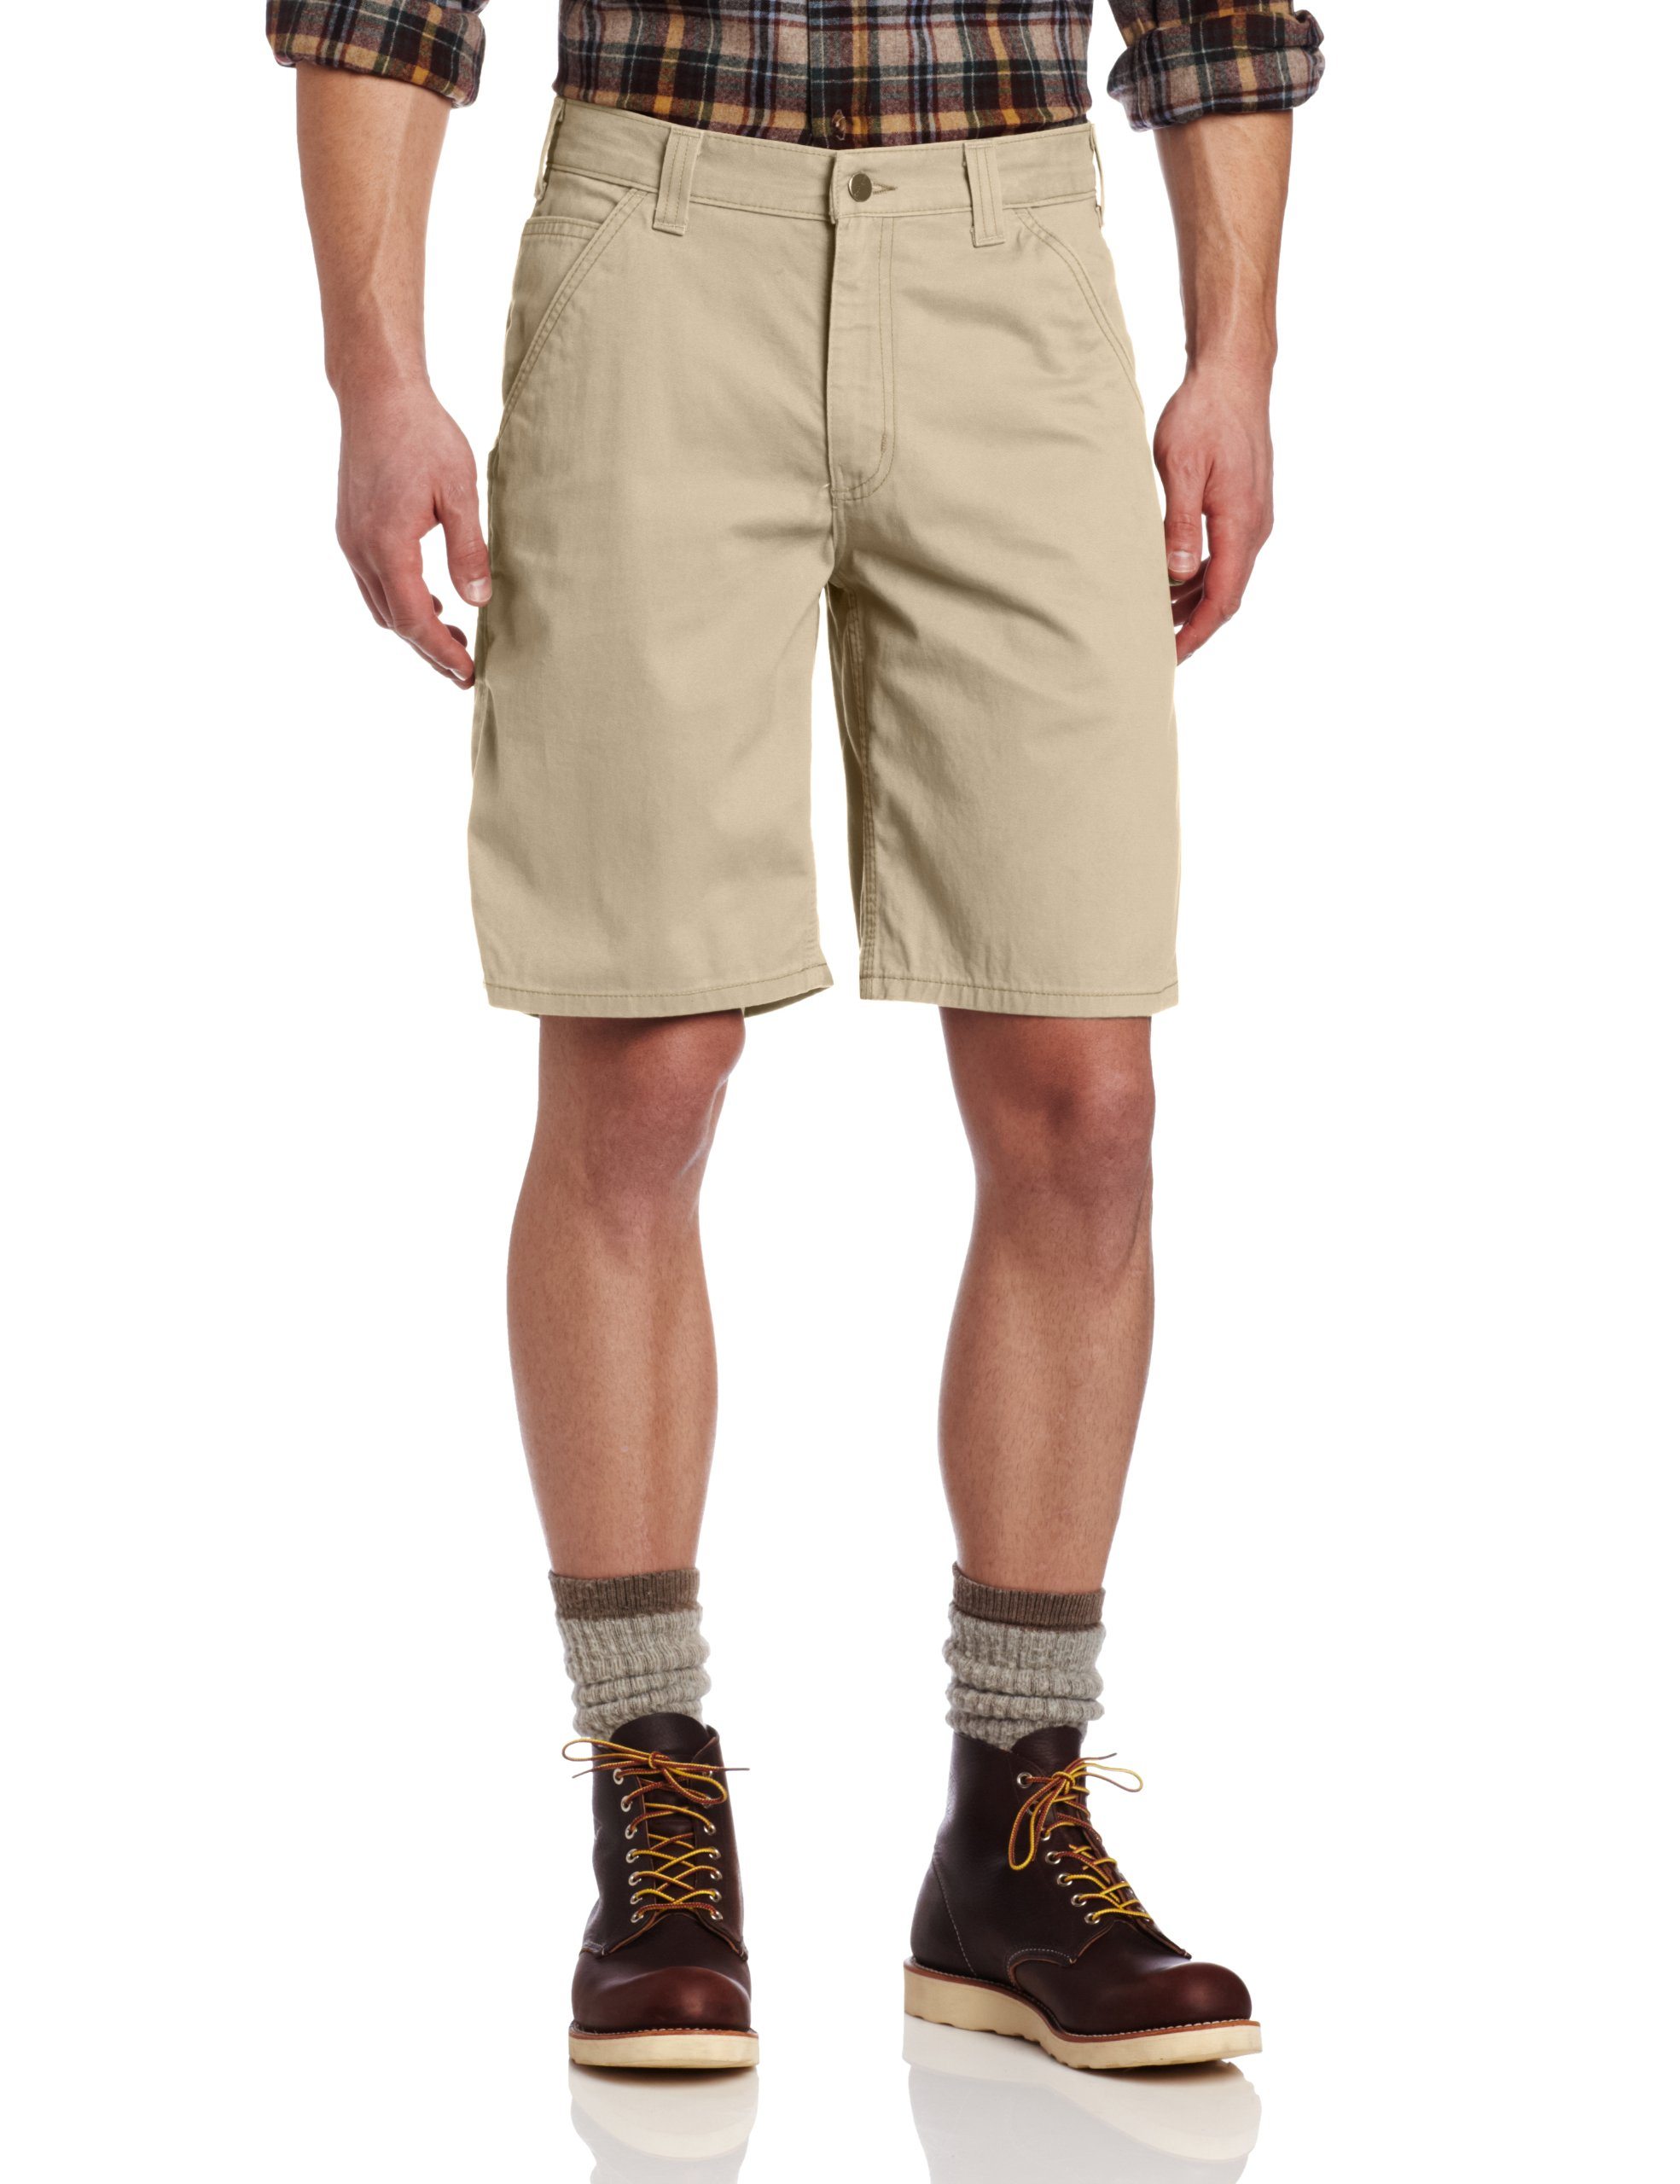 Carhartt Men's Washed Twill Dungaree Short Relaxed Fit,Field Khaki,33